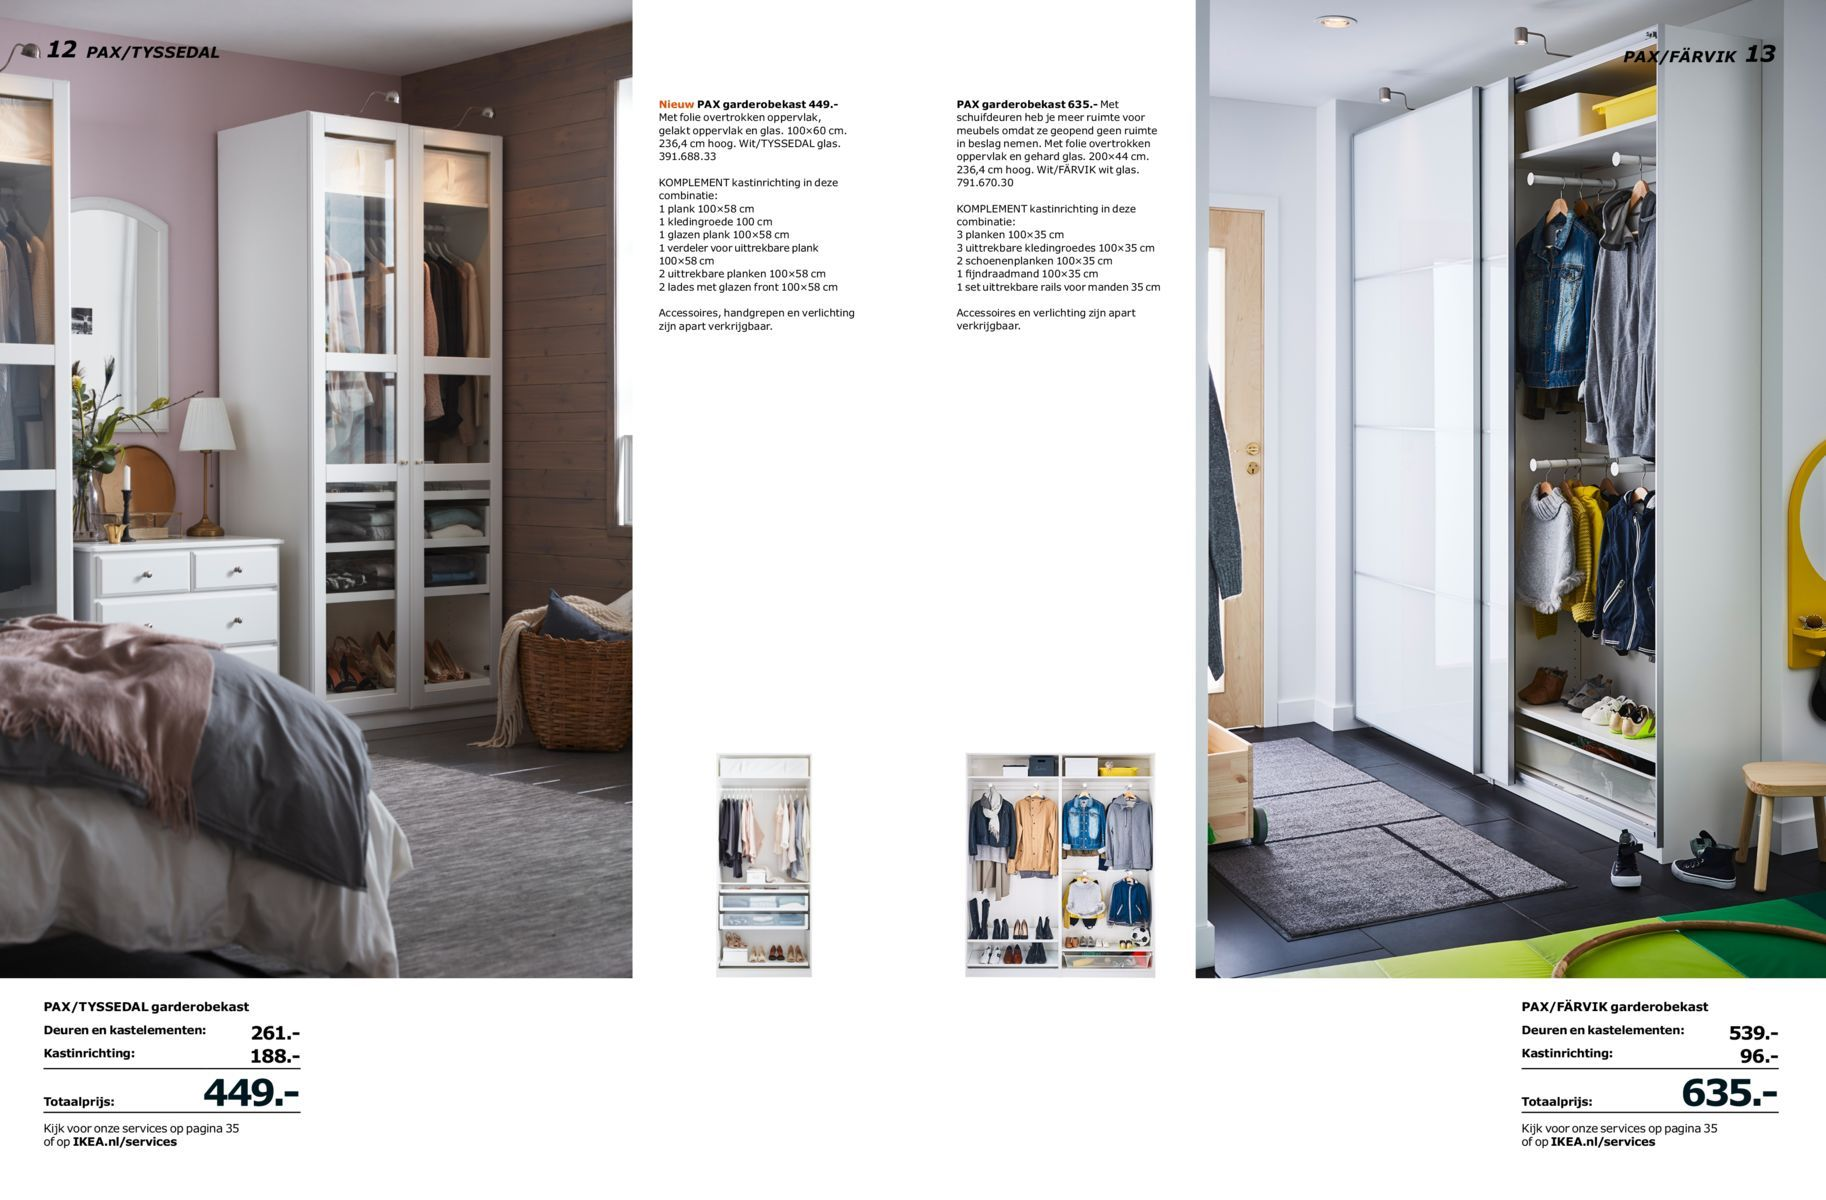 Brochure garderobekasten | kasten | Pinterest | Brochures and Ranges